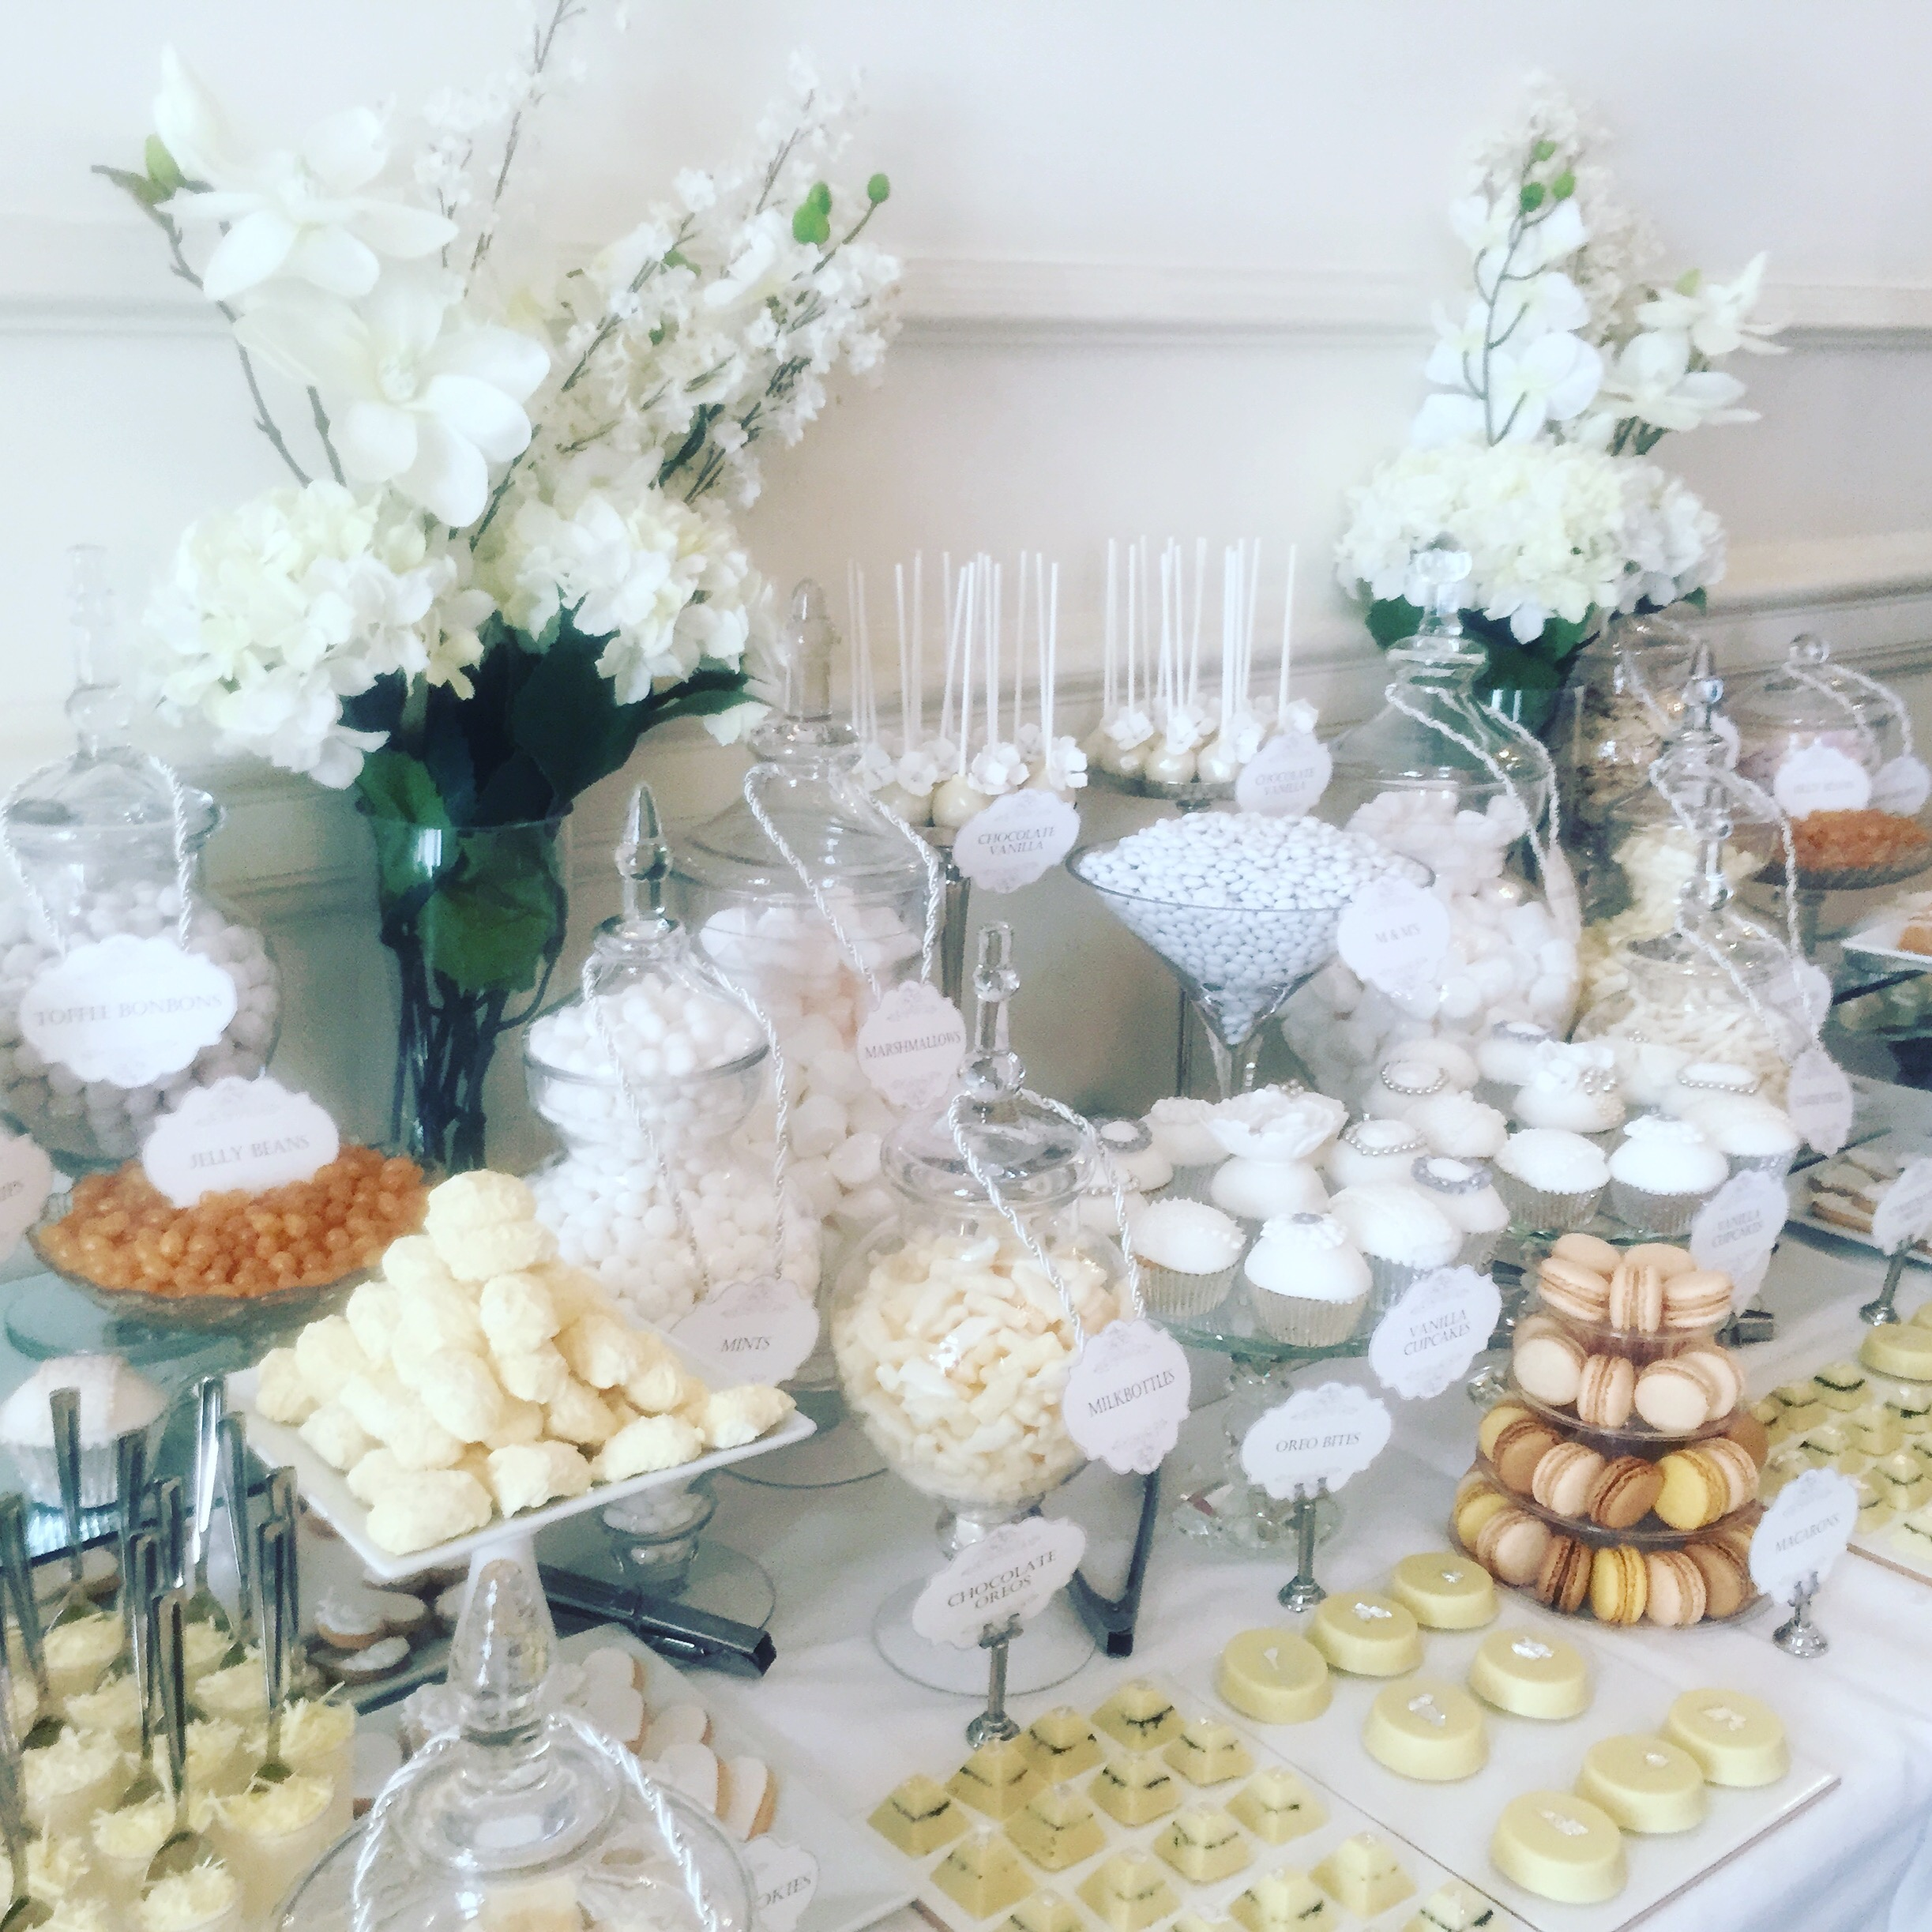 Sensational Wedding Dessert Table In White Candy Buffets L Sweetie Download Free Architecture Designs Embacsunscenecom